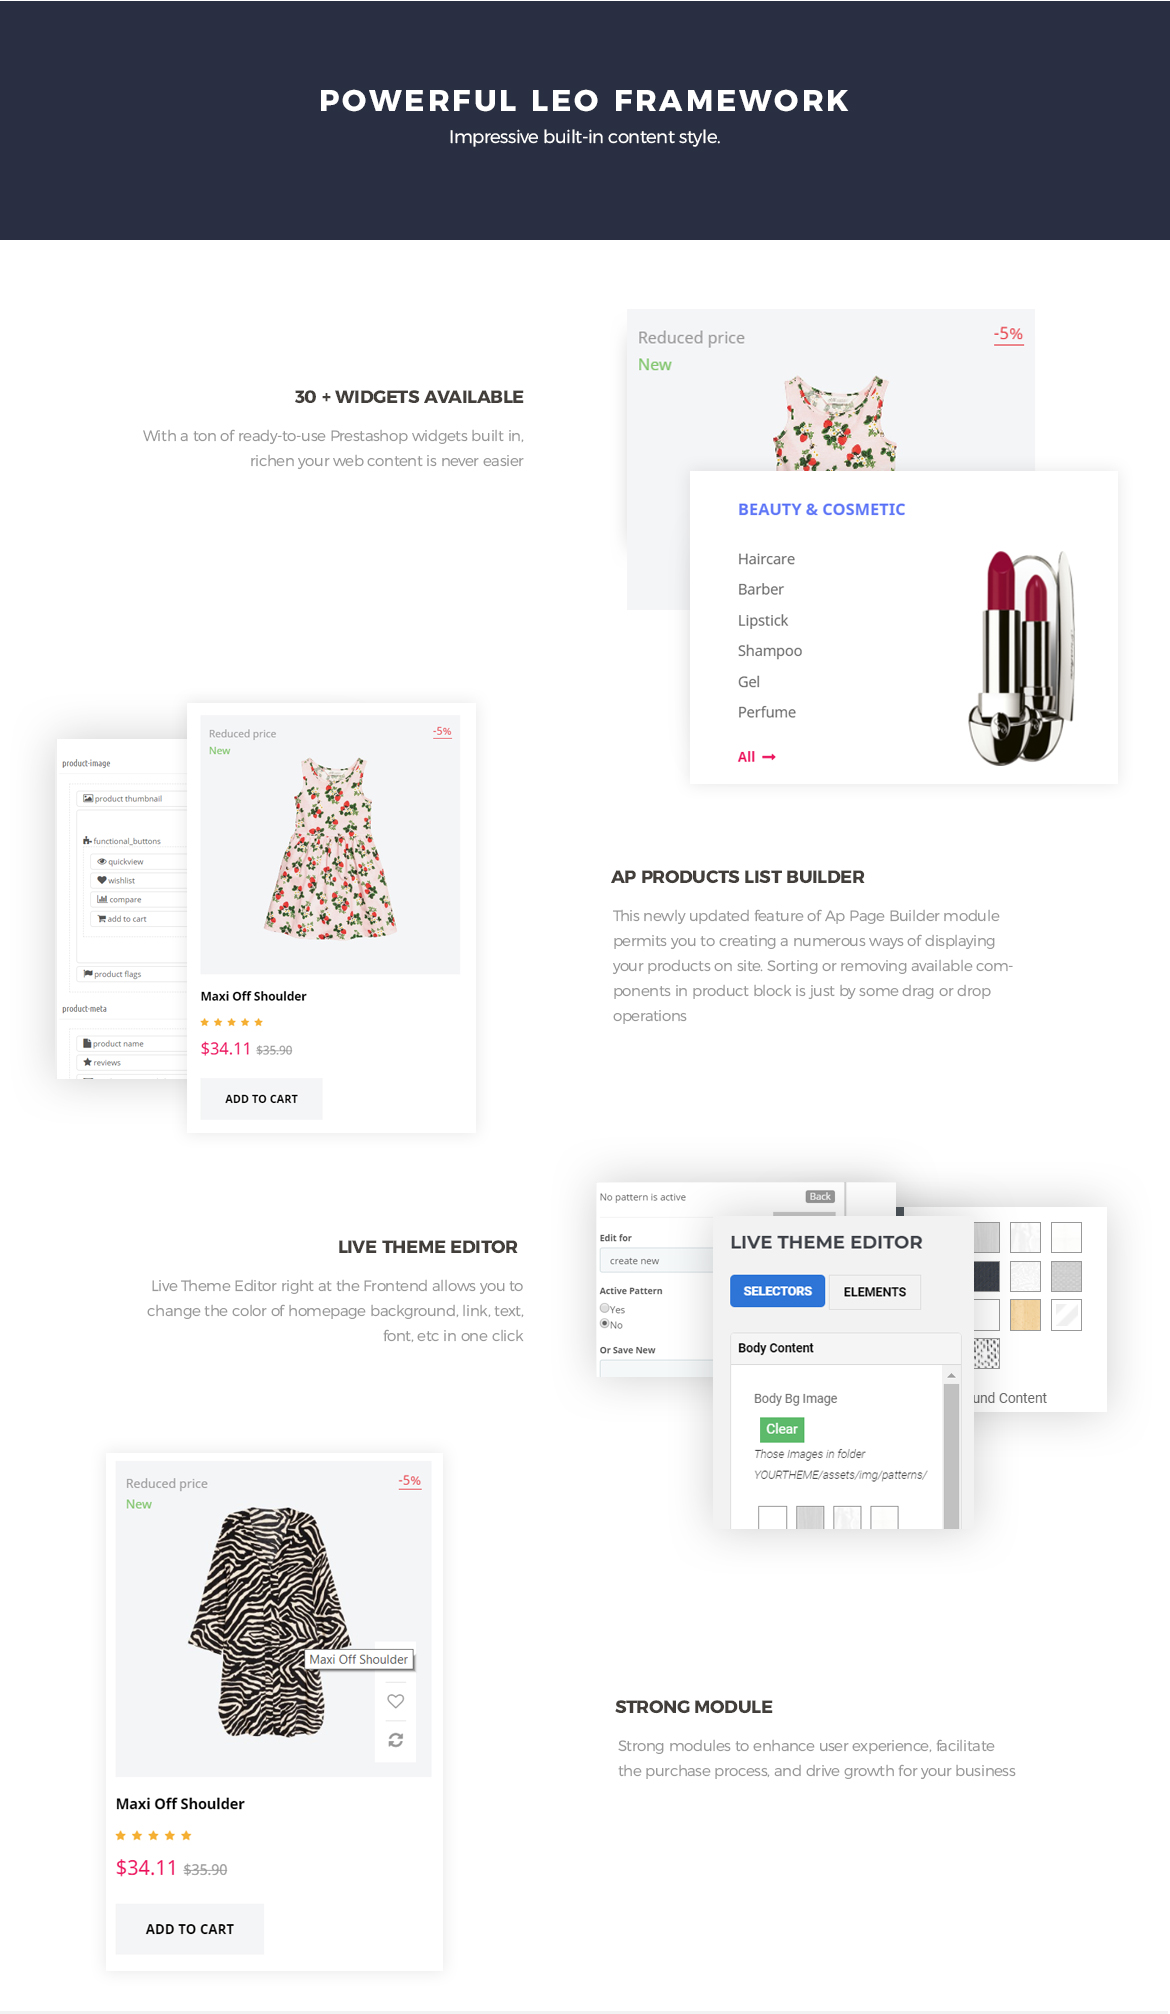 Powerful Leo Framework - Leo Shopsmart Prestashop theme - Hitech store